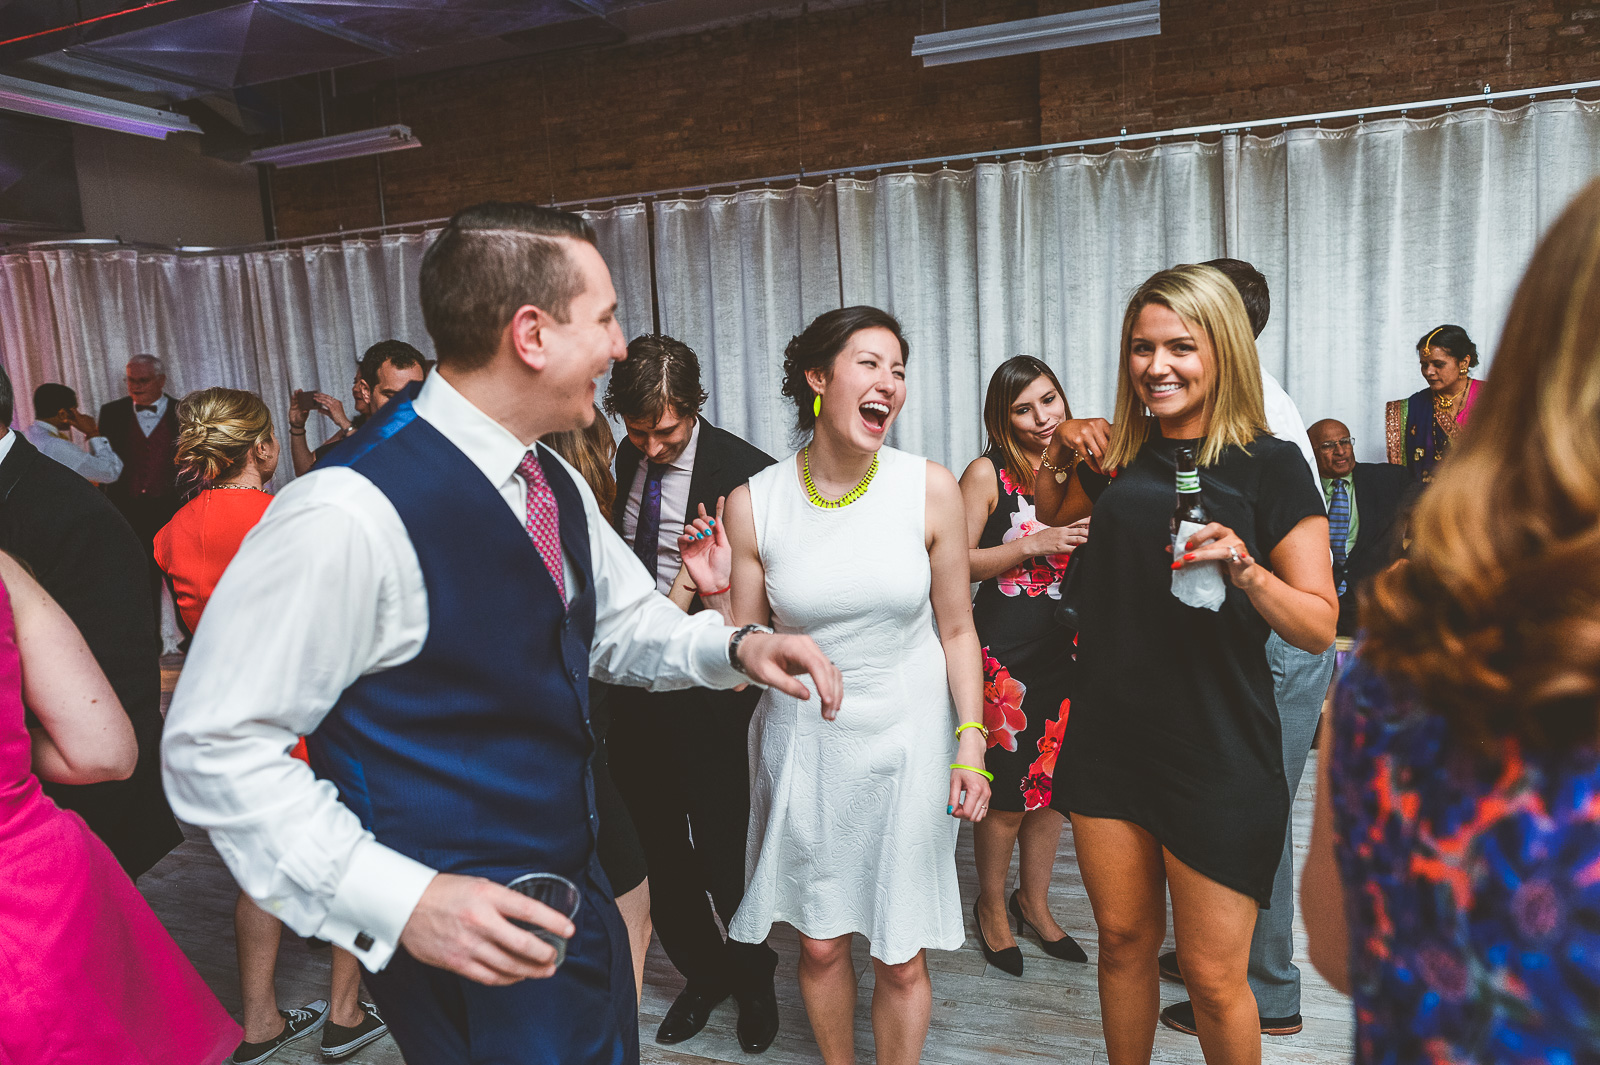 67 bride dnacing - Jackie + Raj // Chicago Wedding Photography at Floating World Gallery